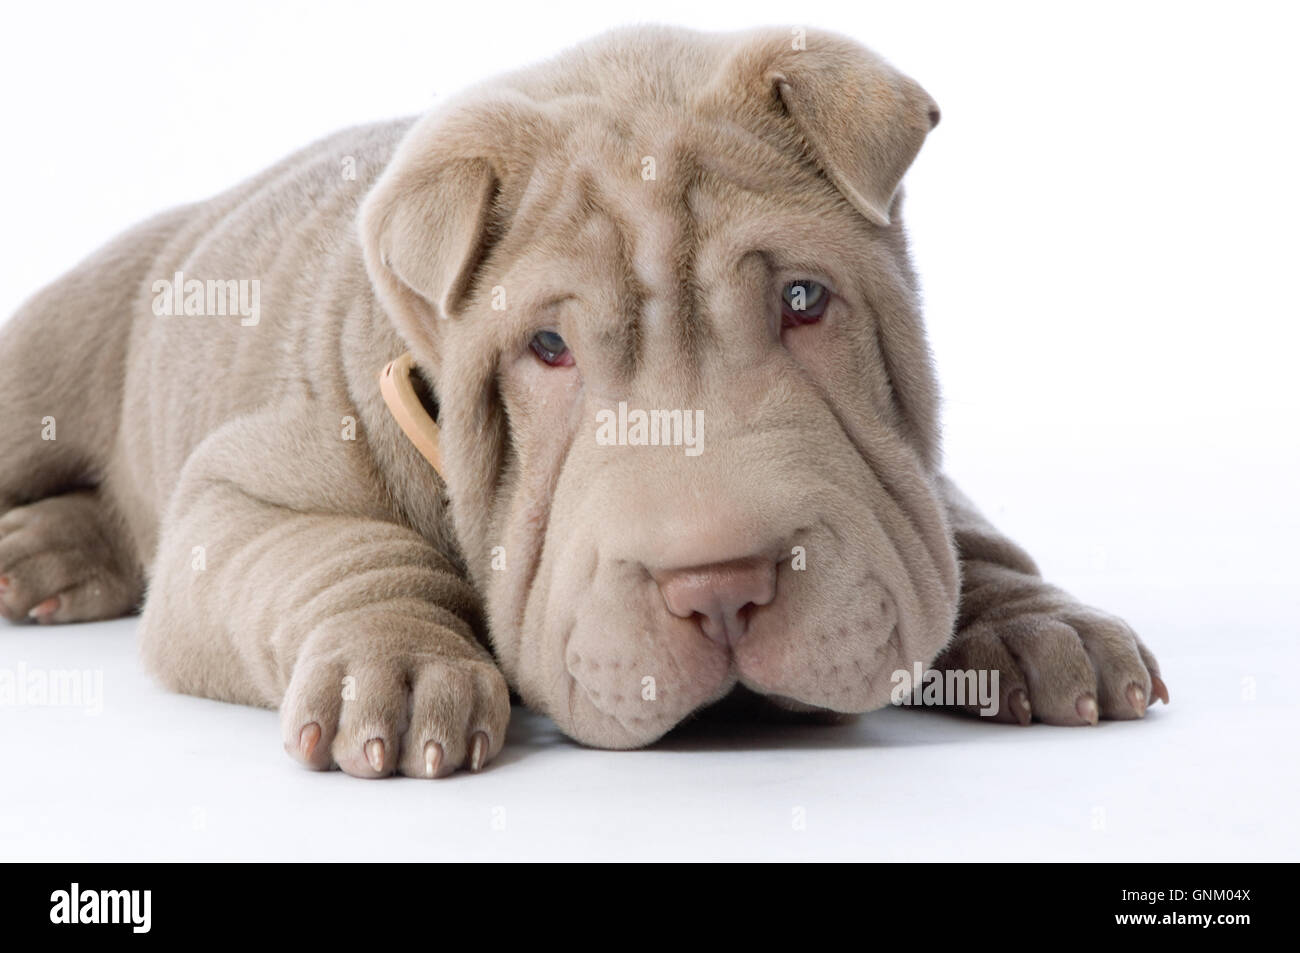 Chinese Wrinkle Dog For Sale